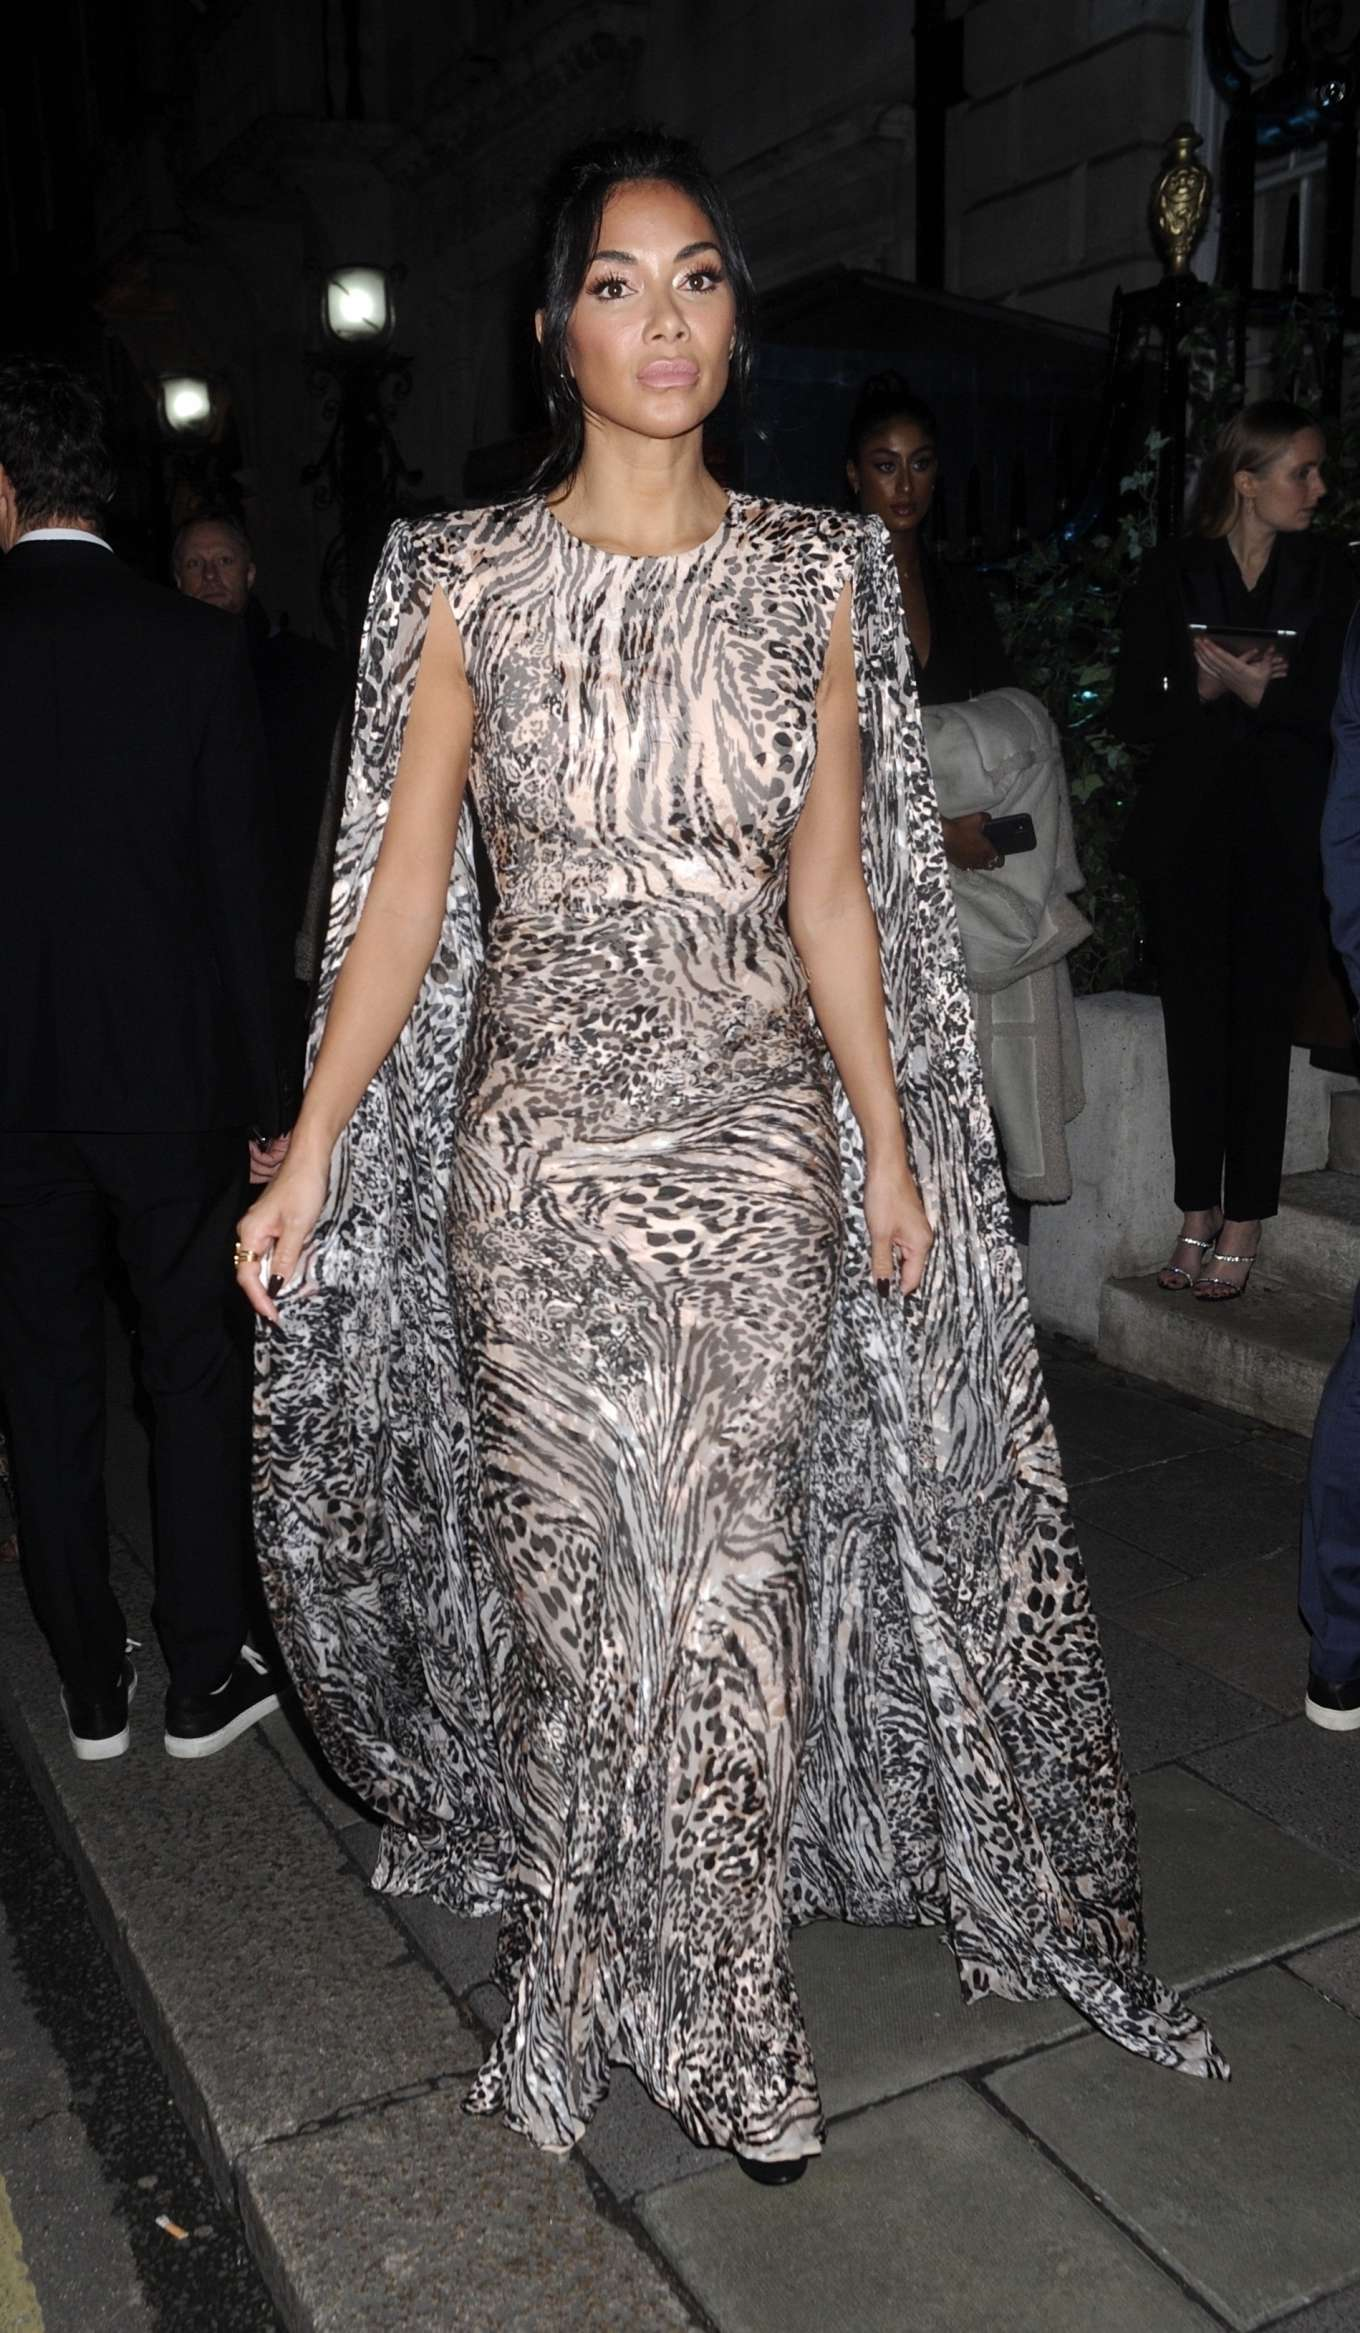 Nicole Scherzinger 2020 : Nicole Scherzinger – Arrives at British Vogues Fashion and Film Party 2020-05